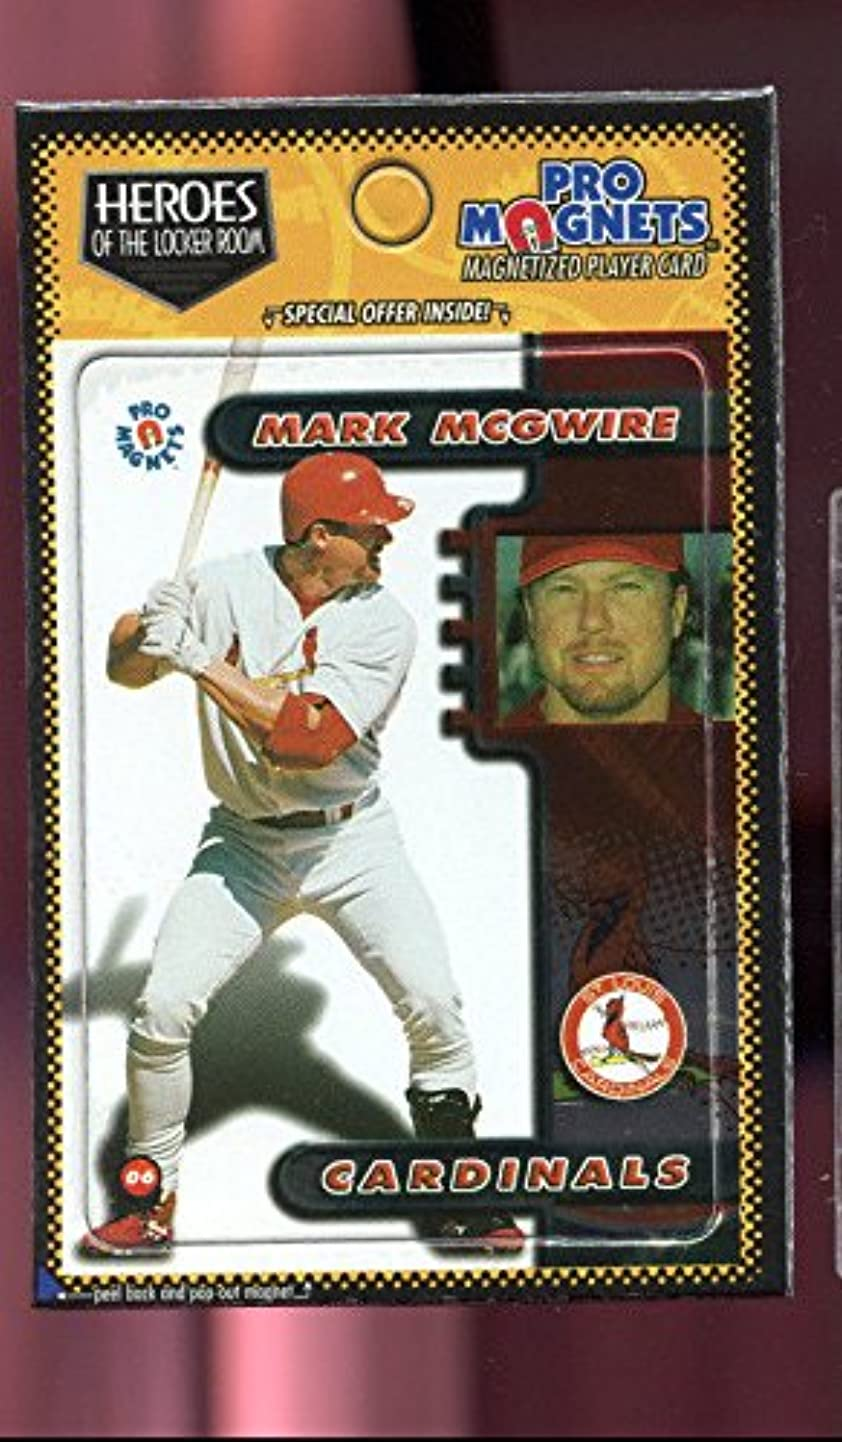 1998 Crown Pro Magnets Card #6 Mark McGwire Mags Refrigerator Heroes Locker Room skqpydsbznu7